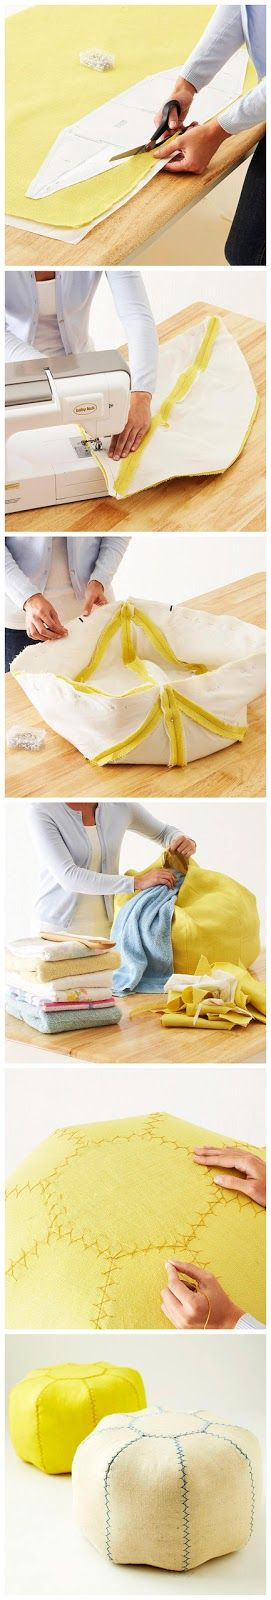 Make your own Pouf! I made own for my apartment and it was super easy! Just simple seams and ironing. If you cant find burlap another stiff ...